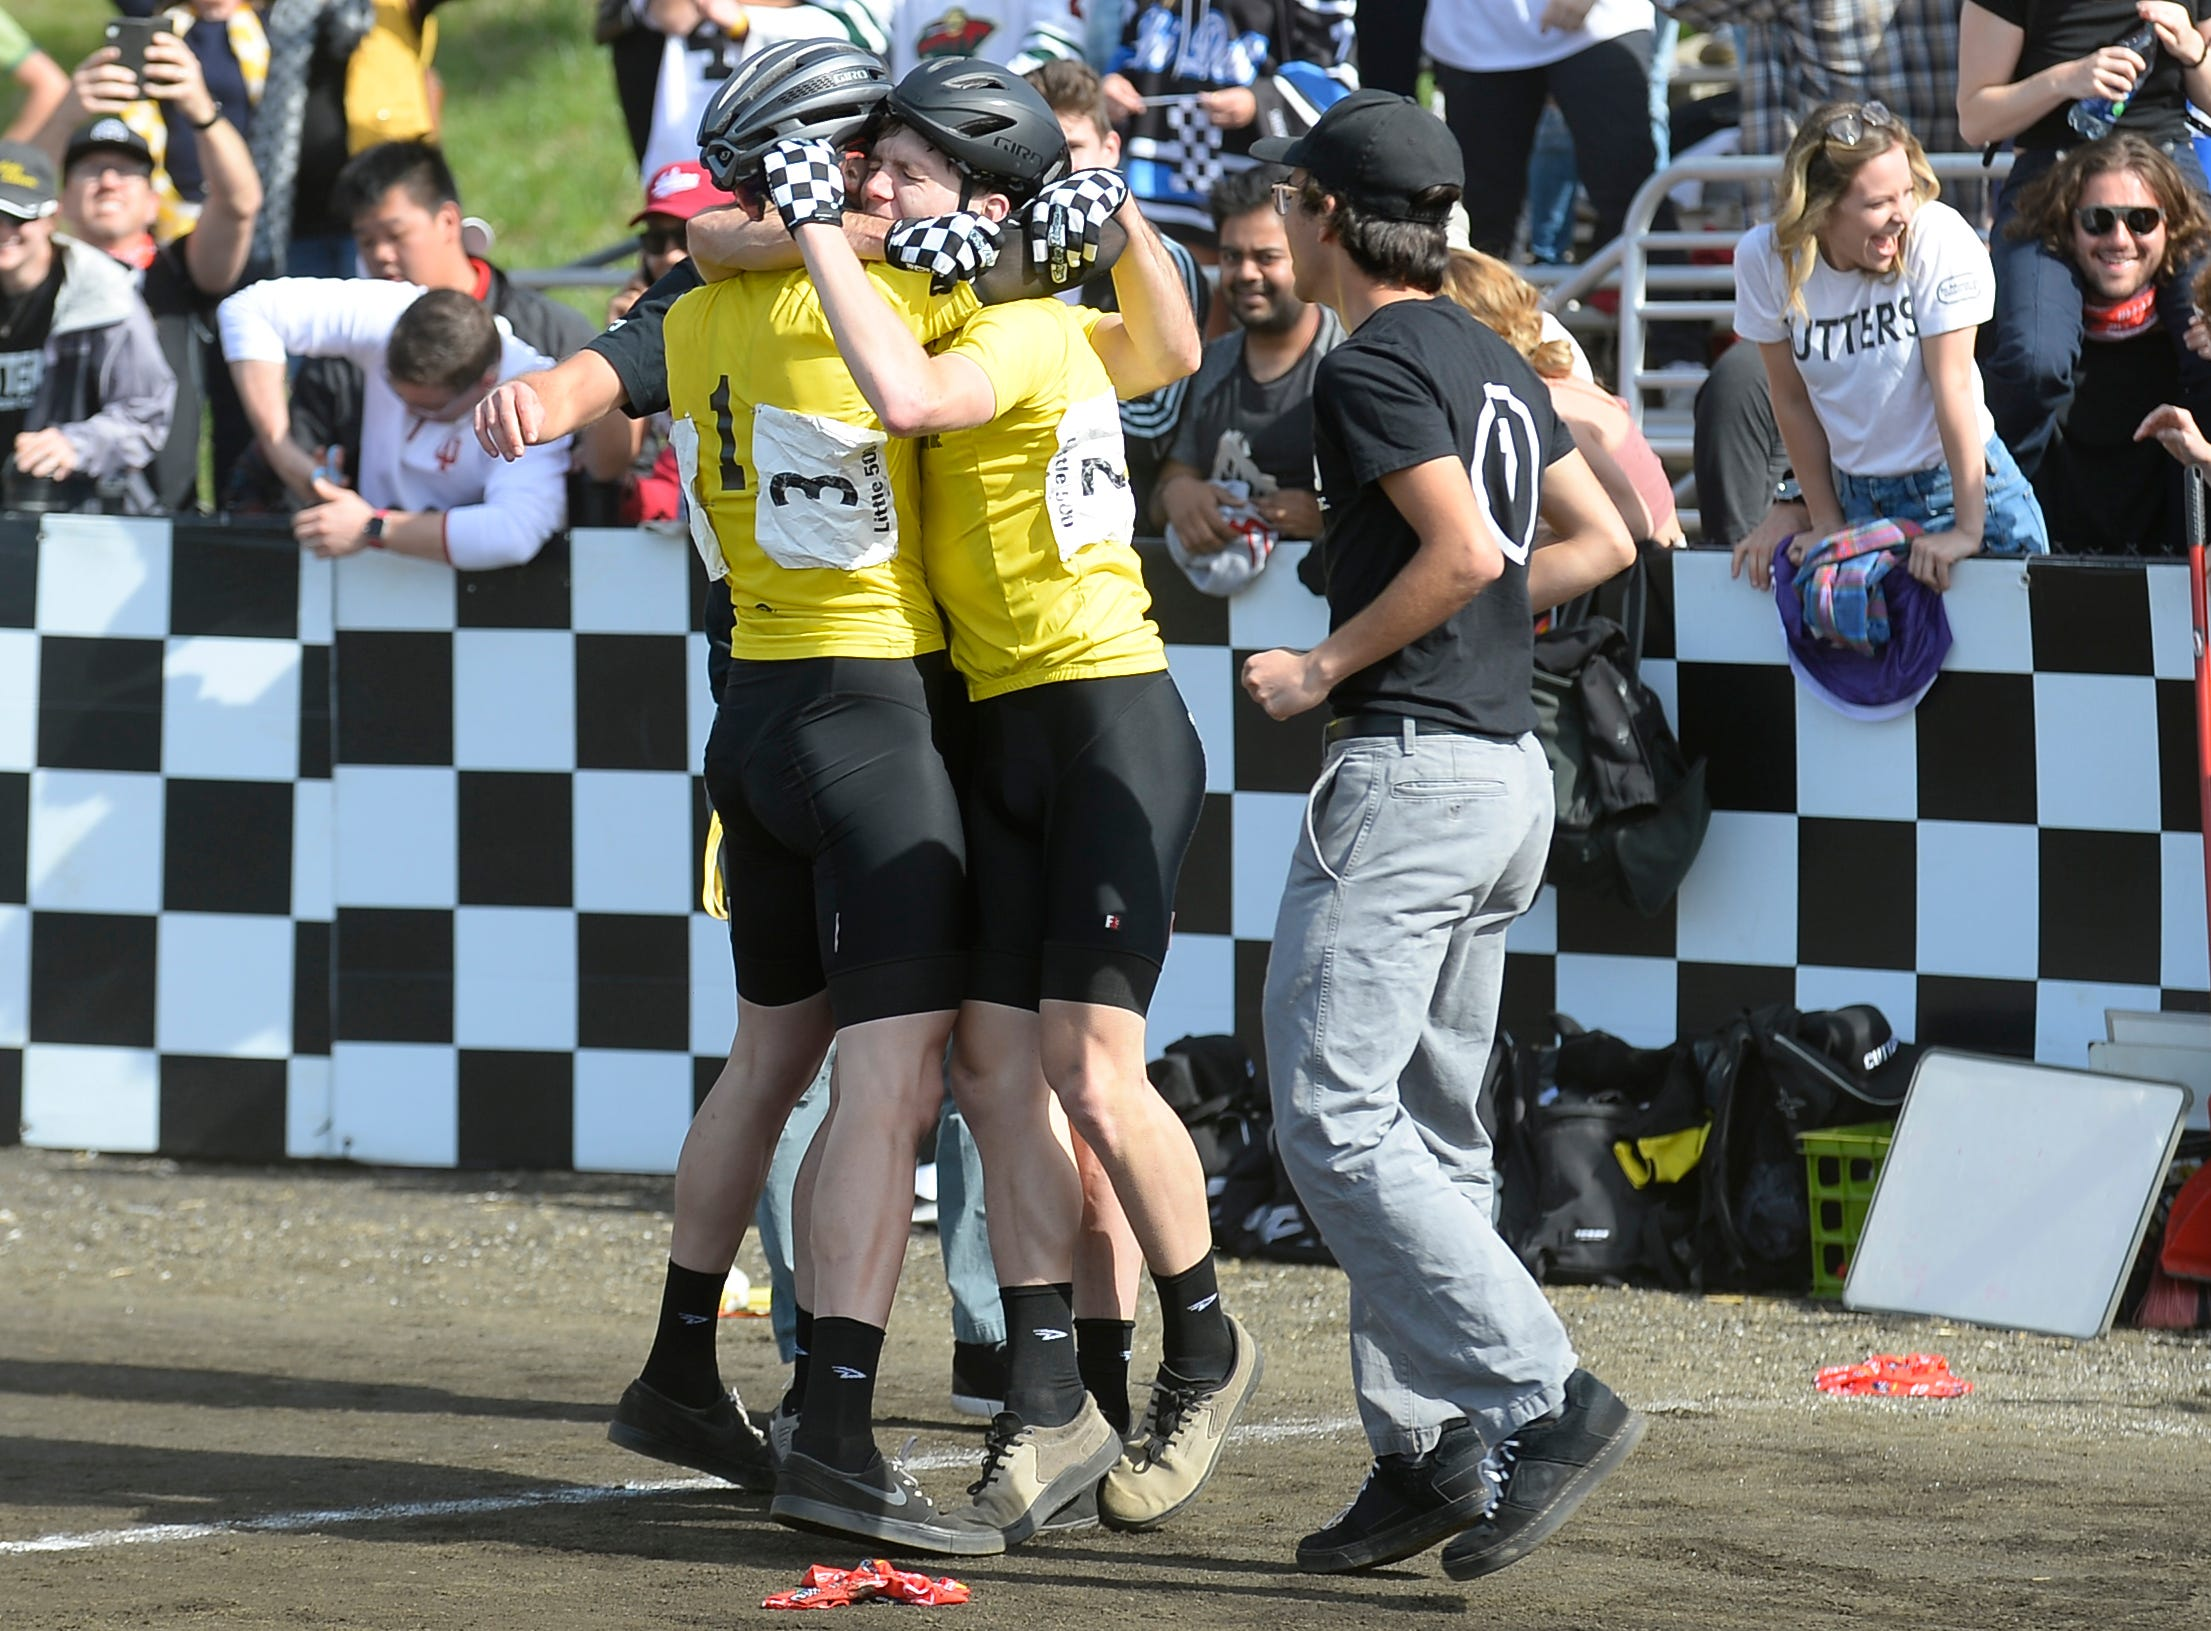 Cutters celebrates after winning the men's Little 500 at Bill Armstrong Stadium in Bloomington, Ind., on Saturday, April 13, 2019.